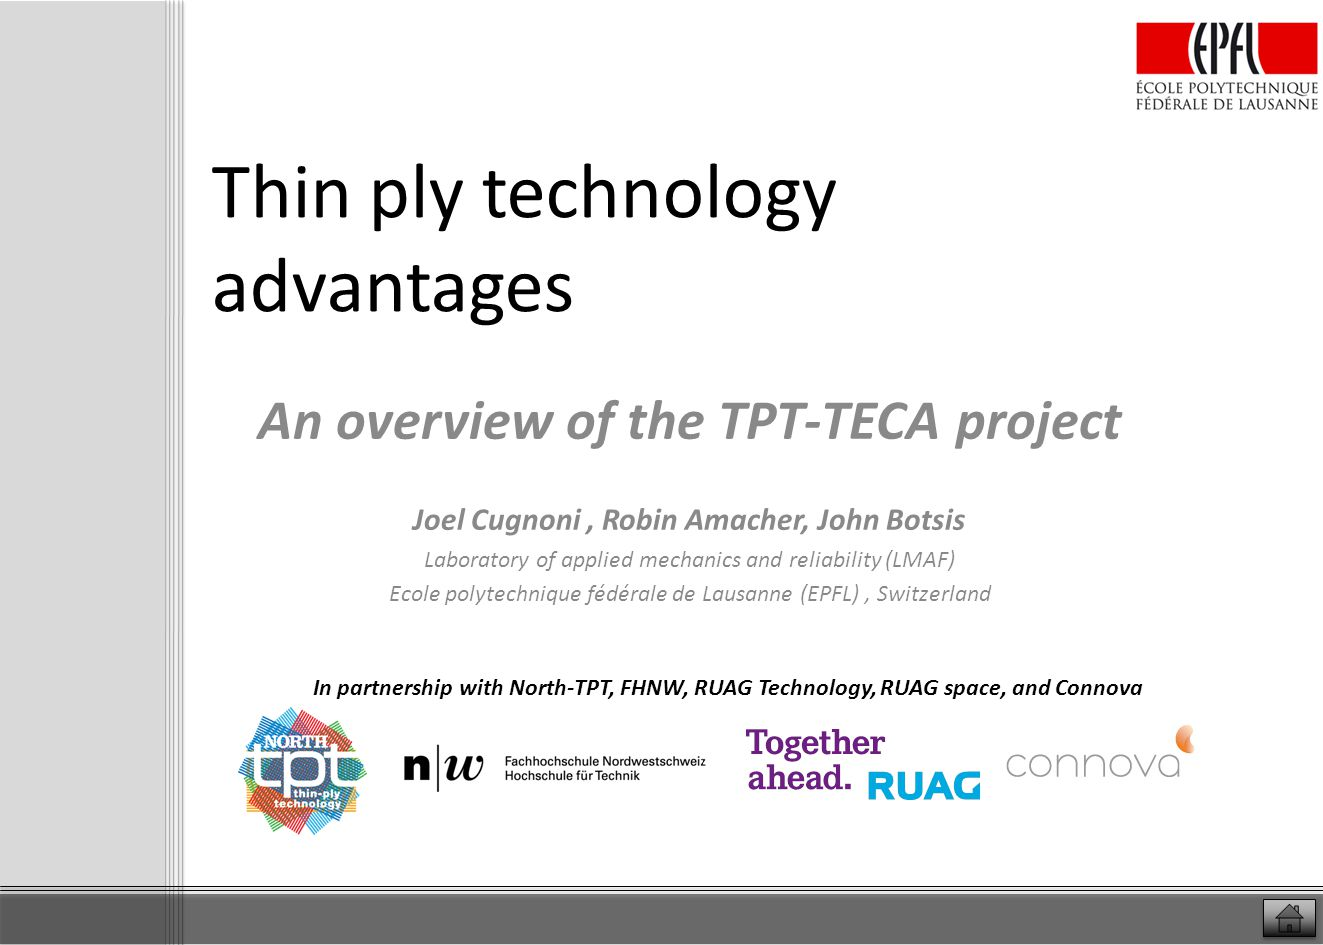 Thin ply technology advantages